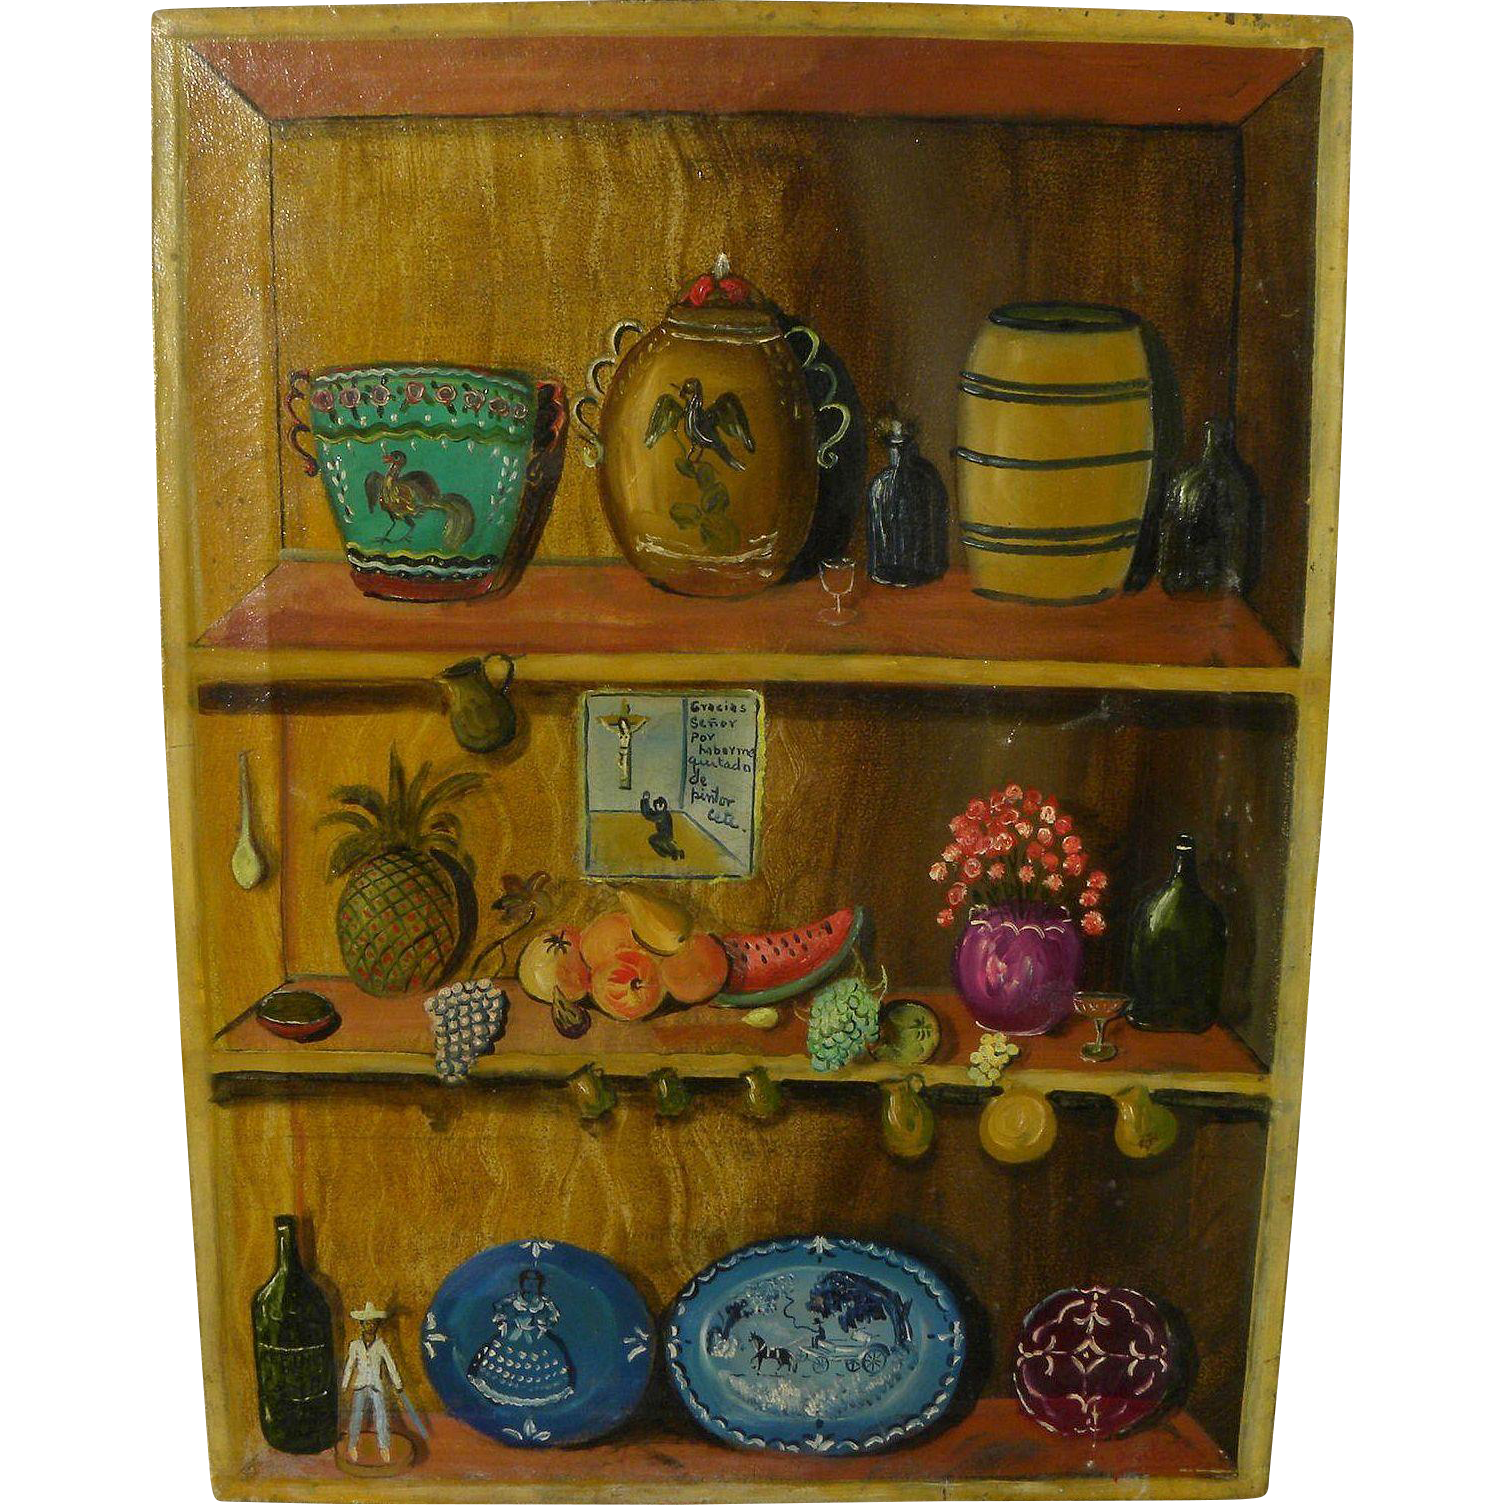 AGAPITO LABIOS (1898-1996) Mexican folk art painting of shelves and household objects